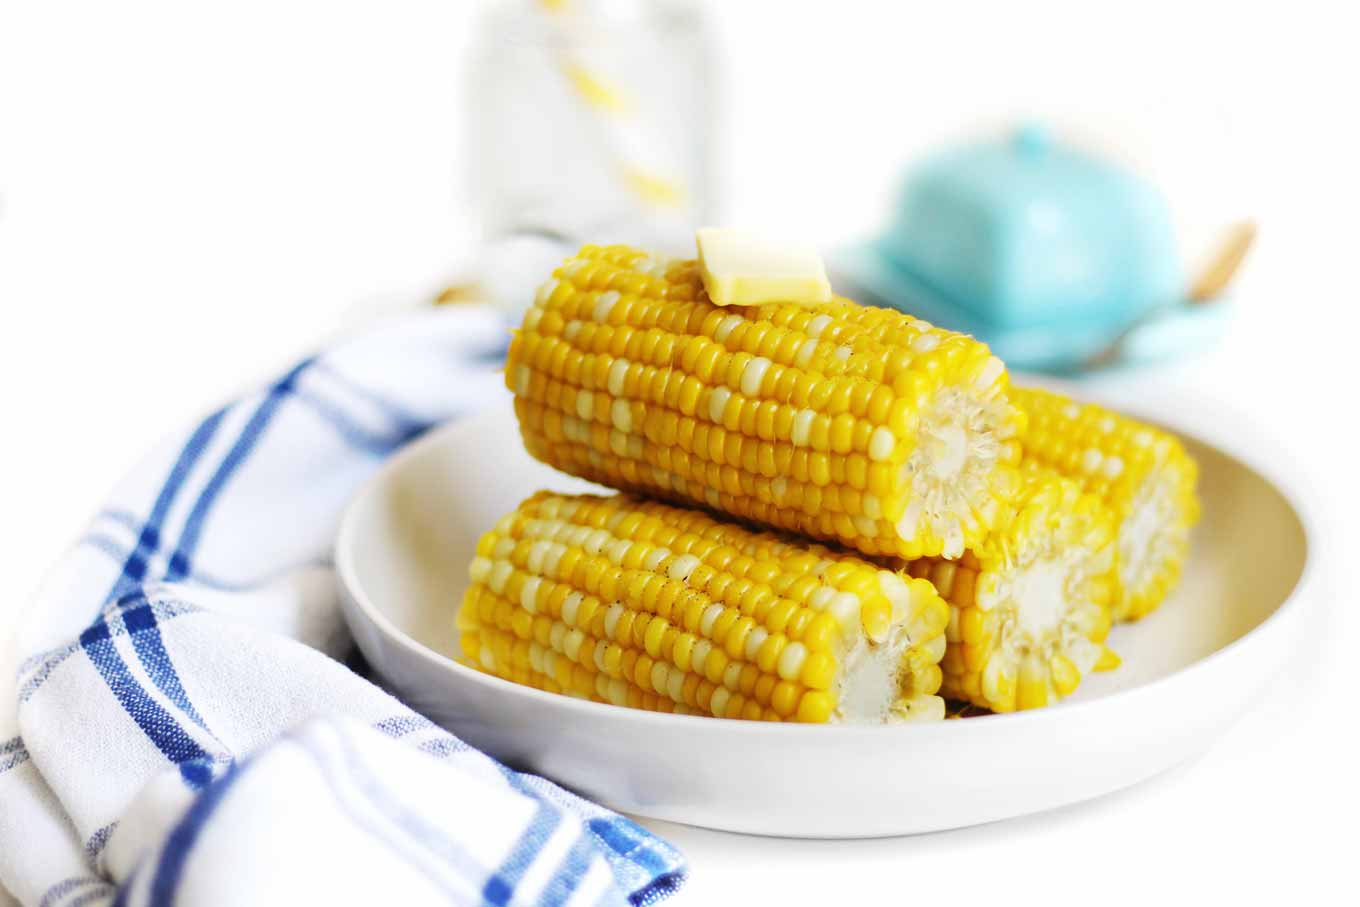 corn on the cob stack